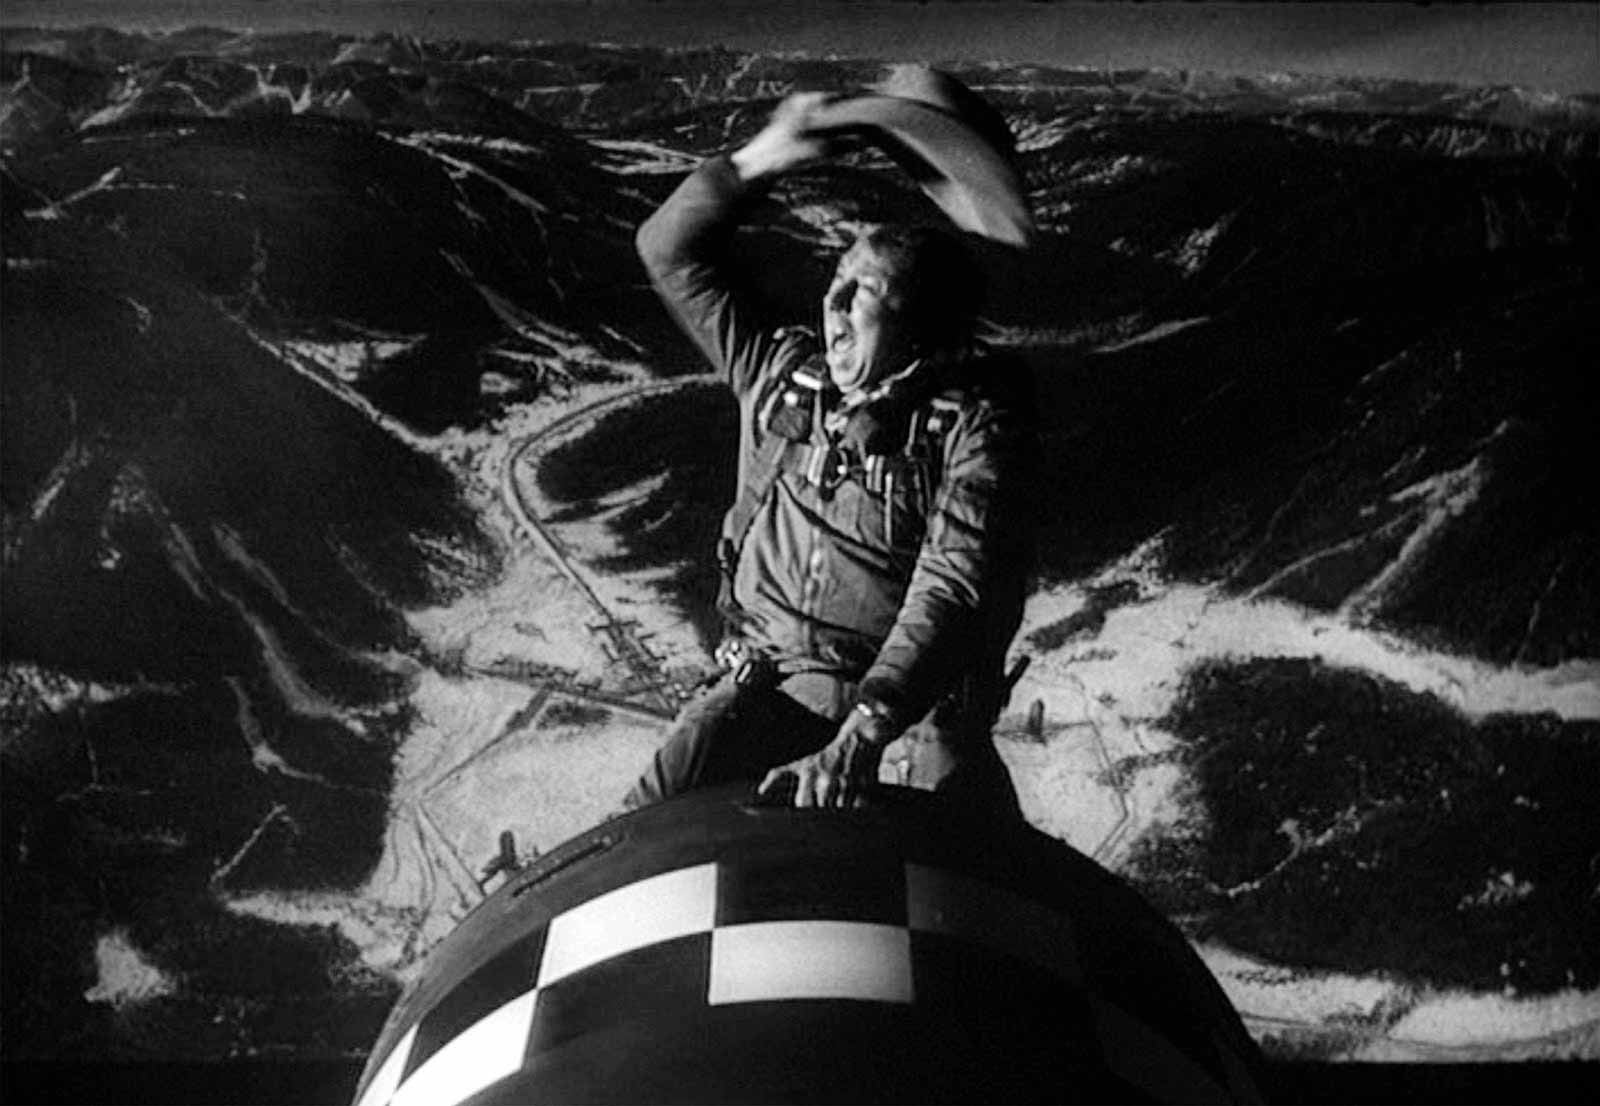 A still showing Slim Pickens from Stanley Kubrick's Dr. Strangelove or: How I Learned to Stop Worrying and Love the Bomb, 1964